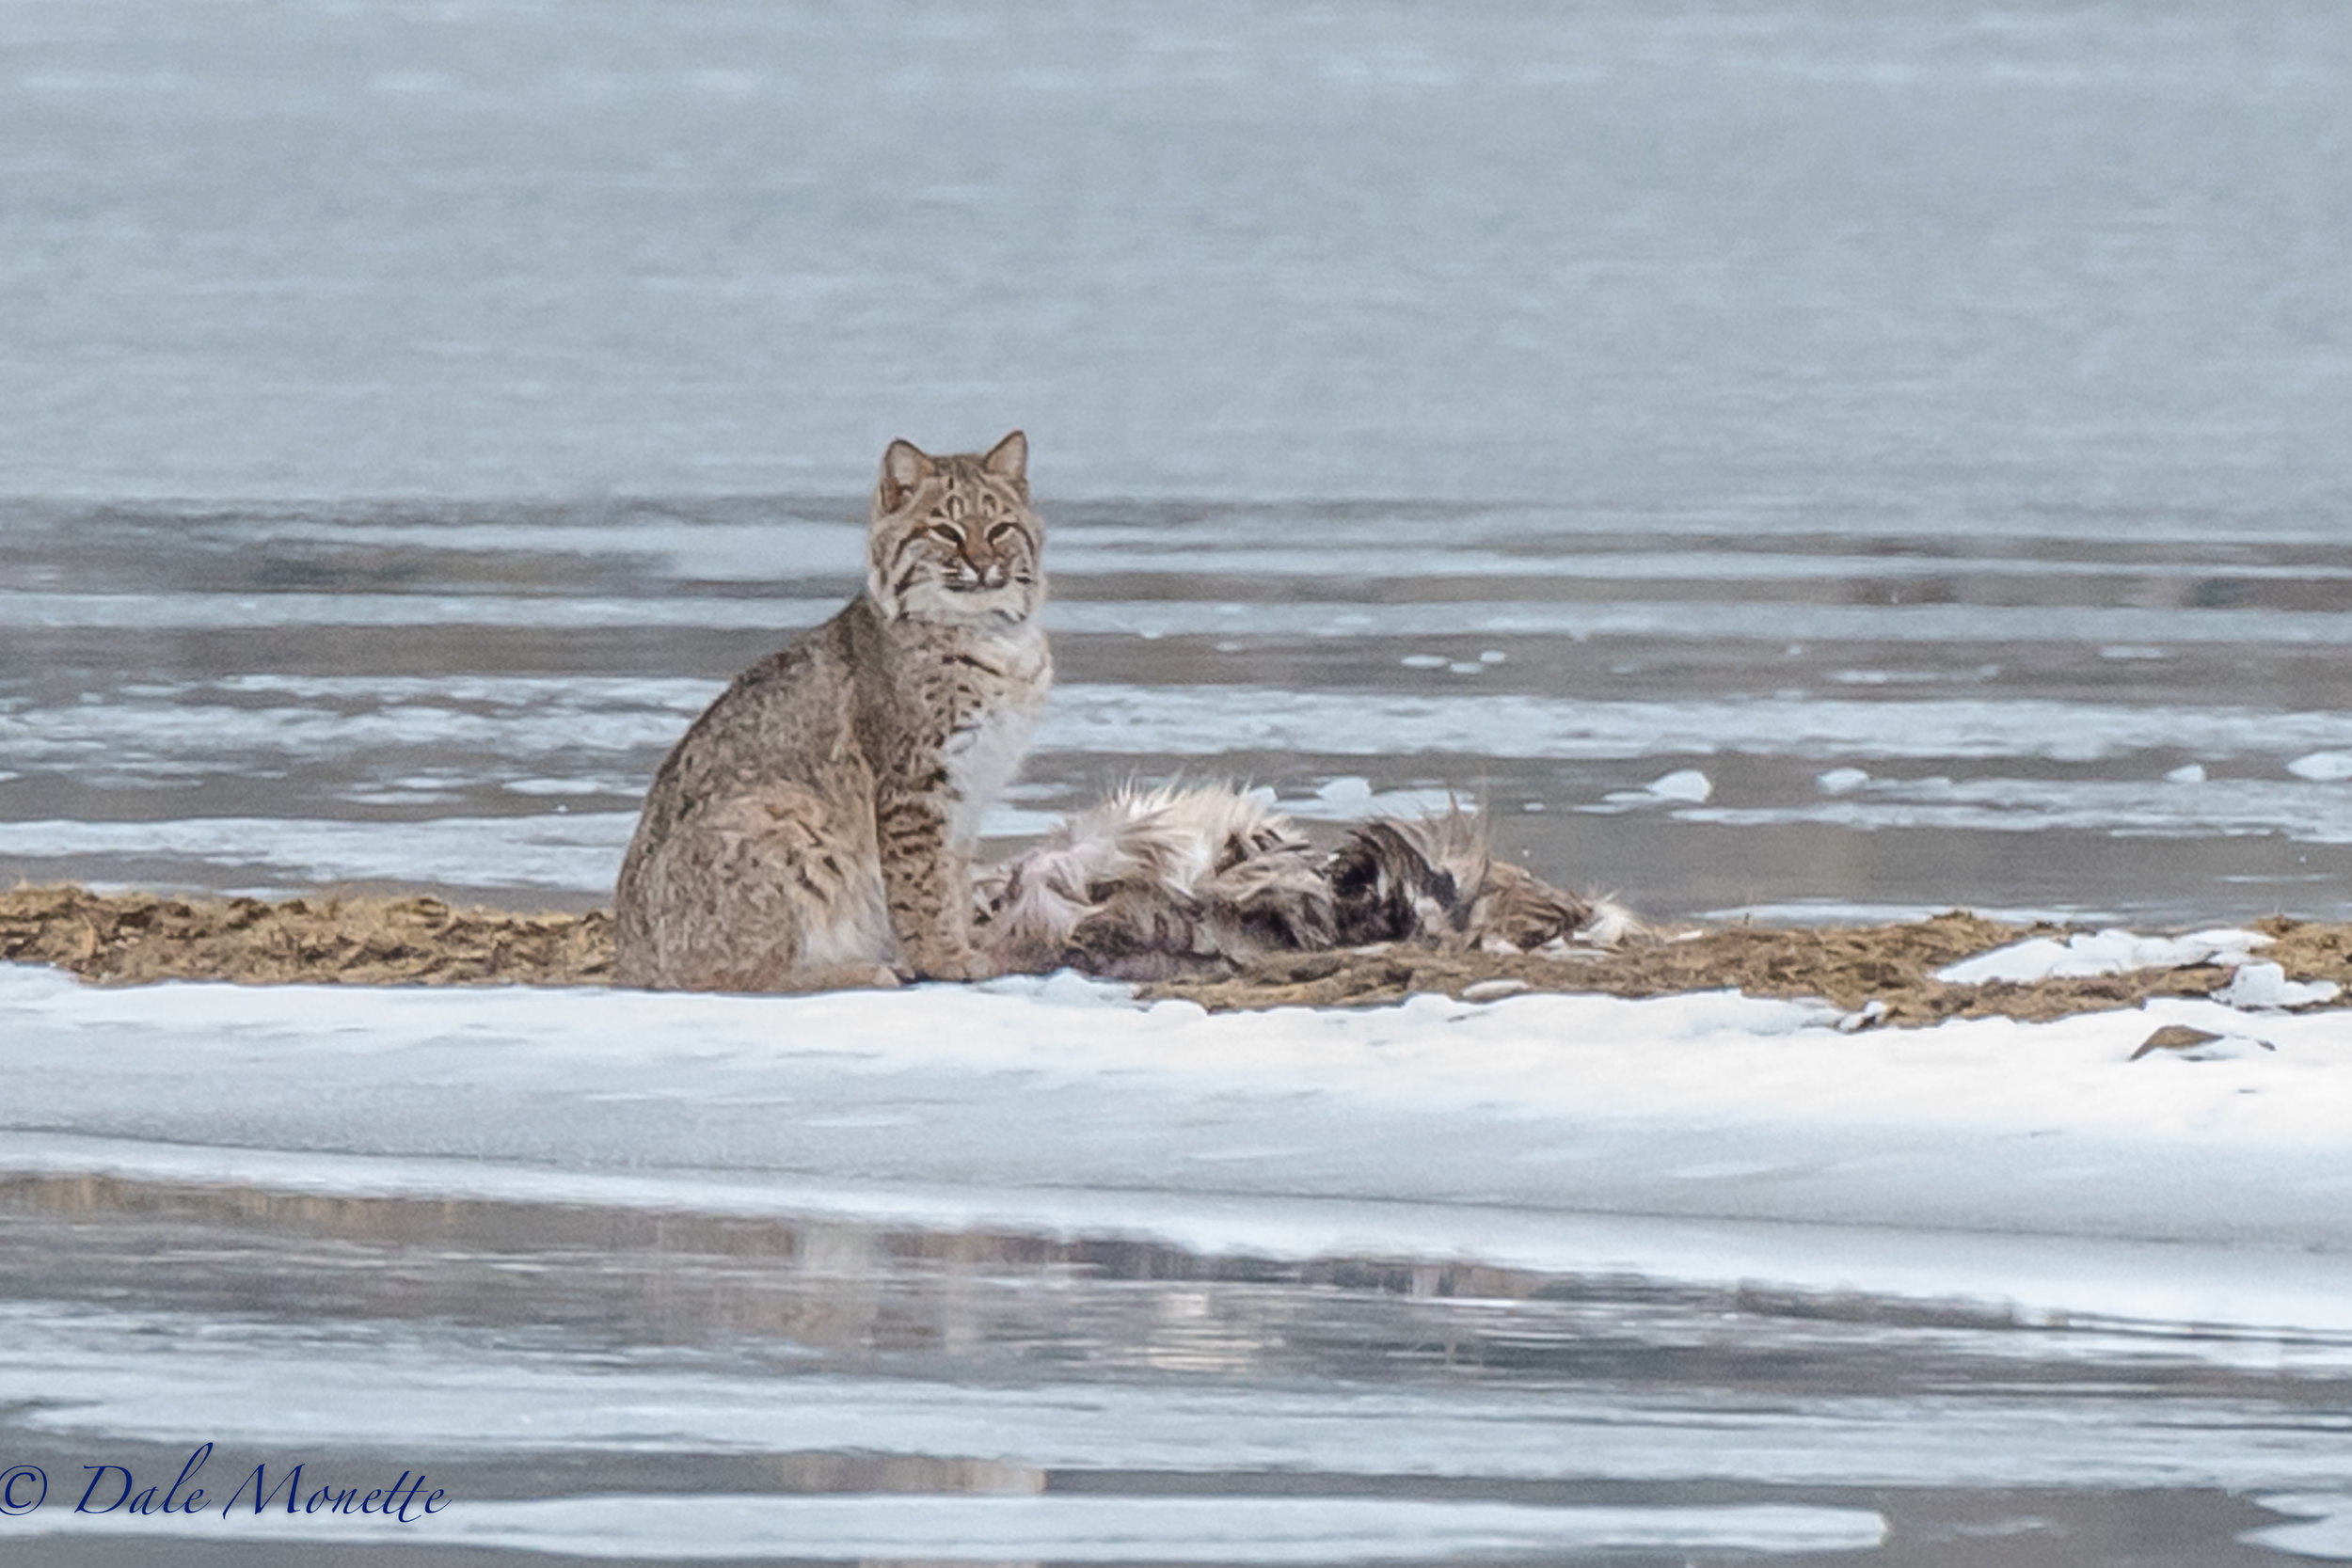 I watched this bobcat feed on a deer carcass on the ice today for about 2 and a half hours.  It was quite an experience !  1/4/17